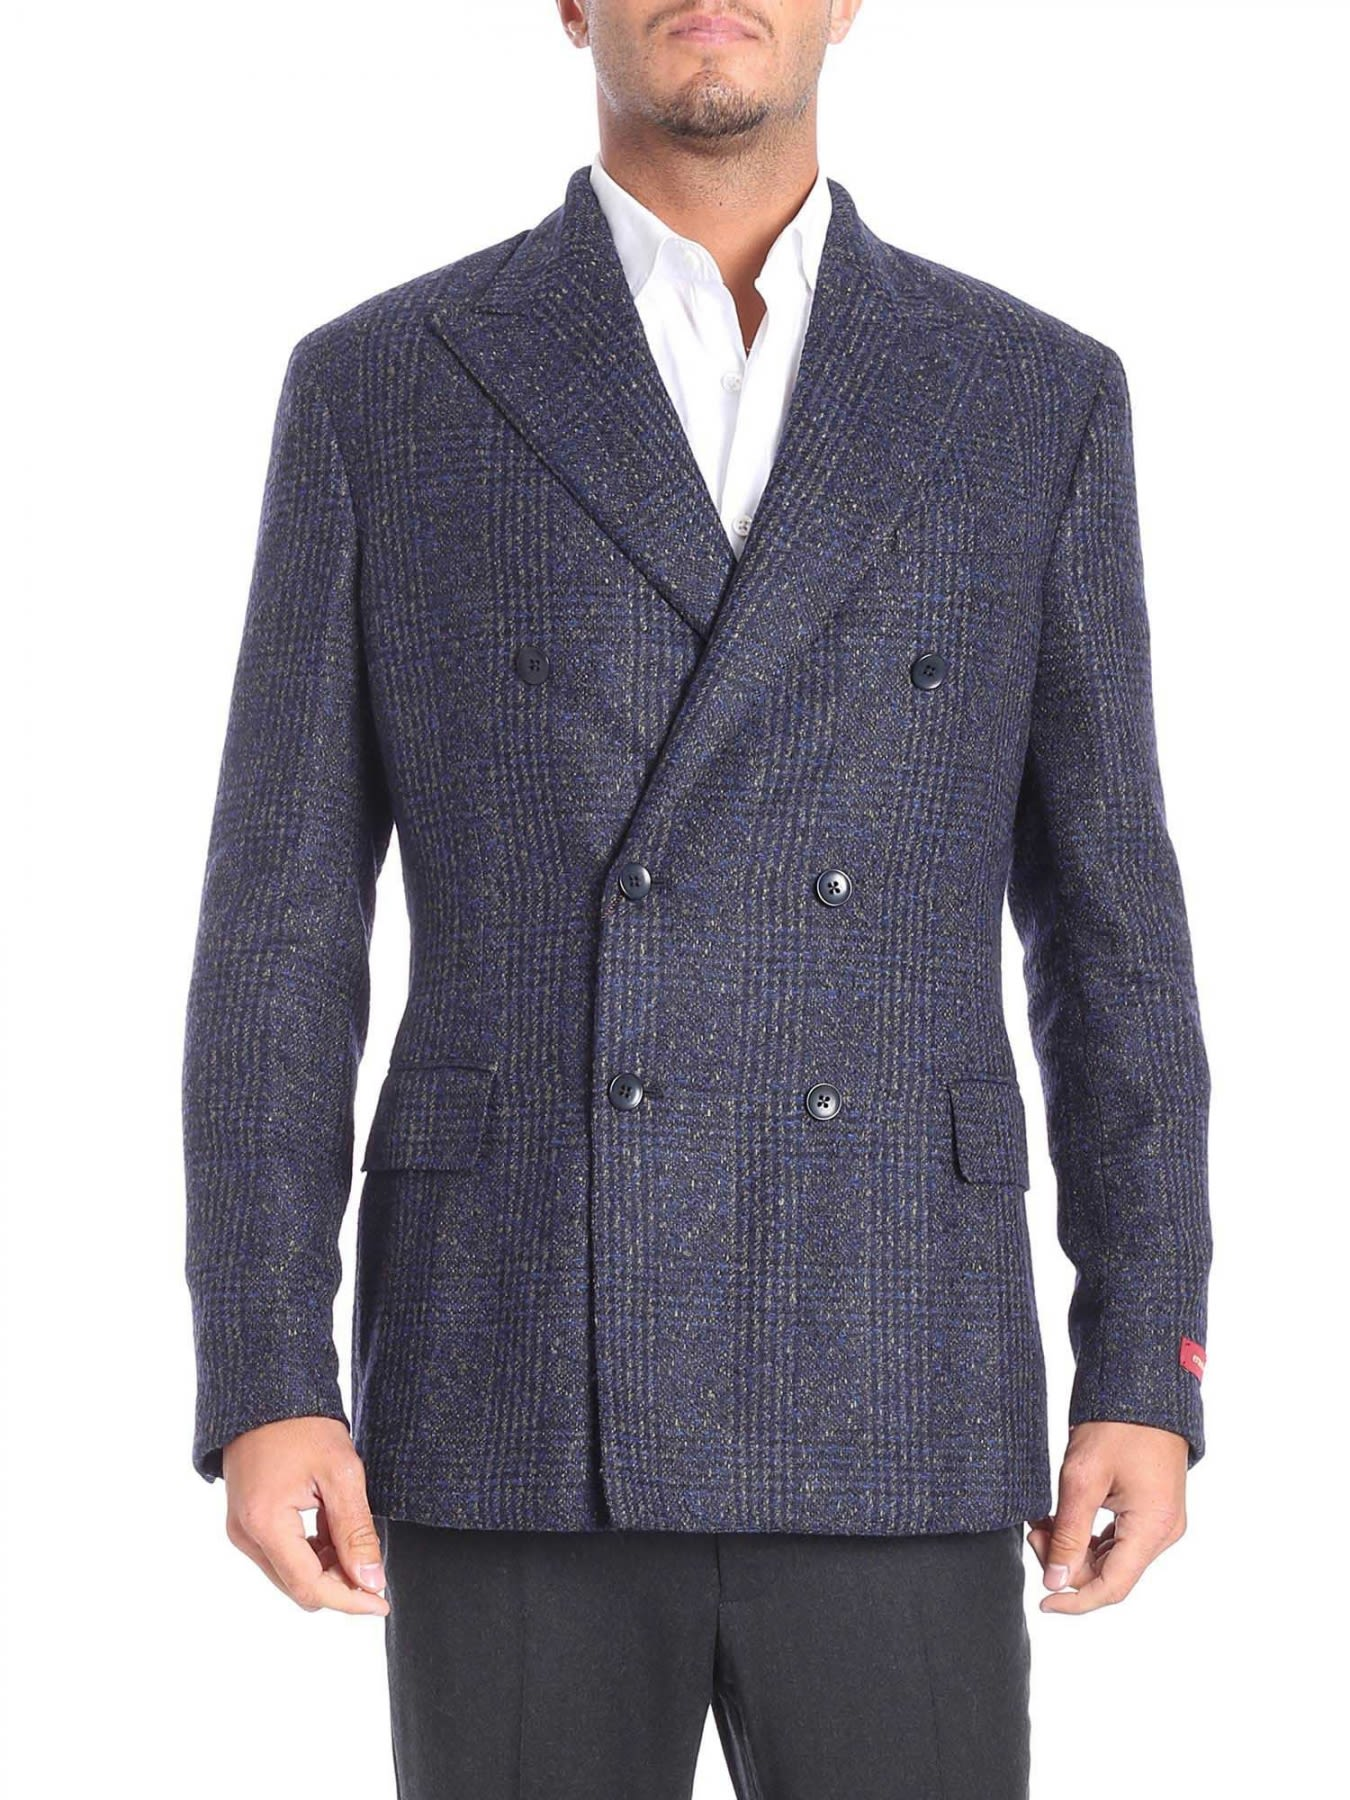 ERNESTO ESPOSITO Double-Breasted Woolen Cloth Jacket in Blue